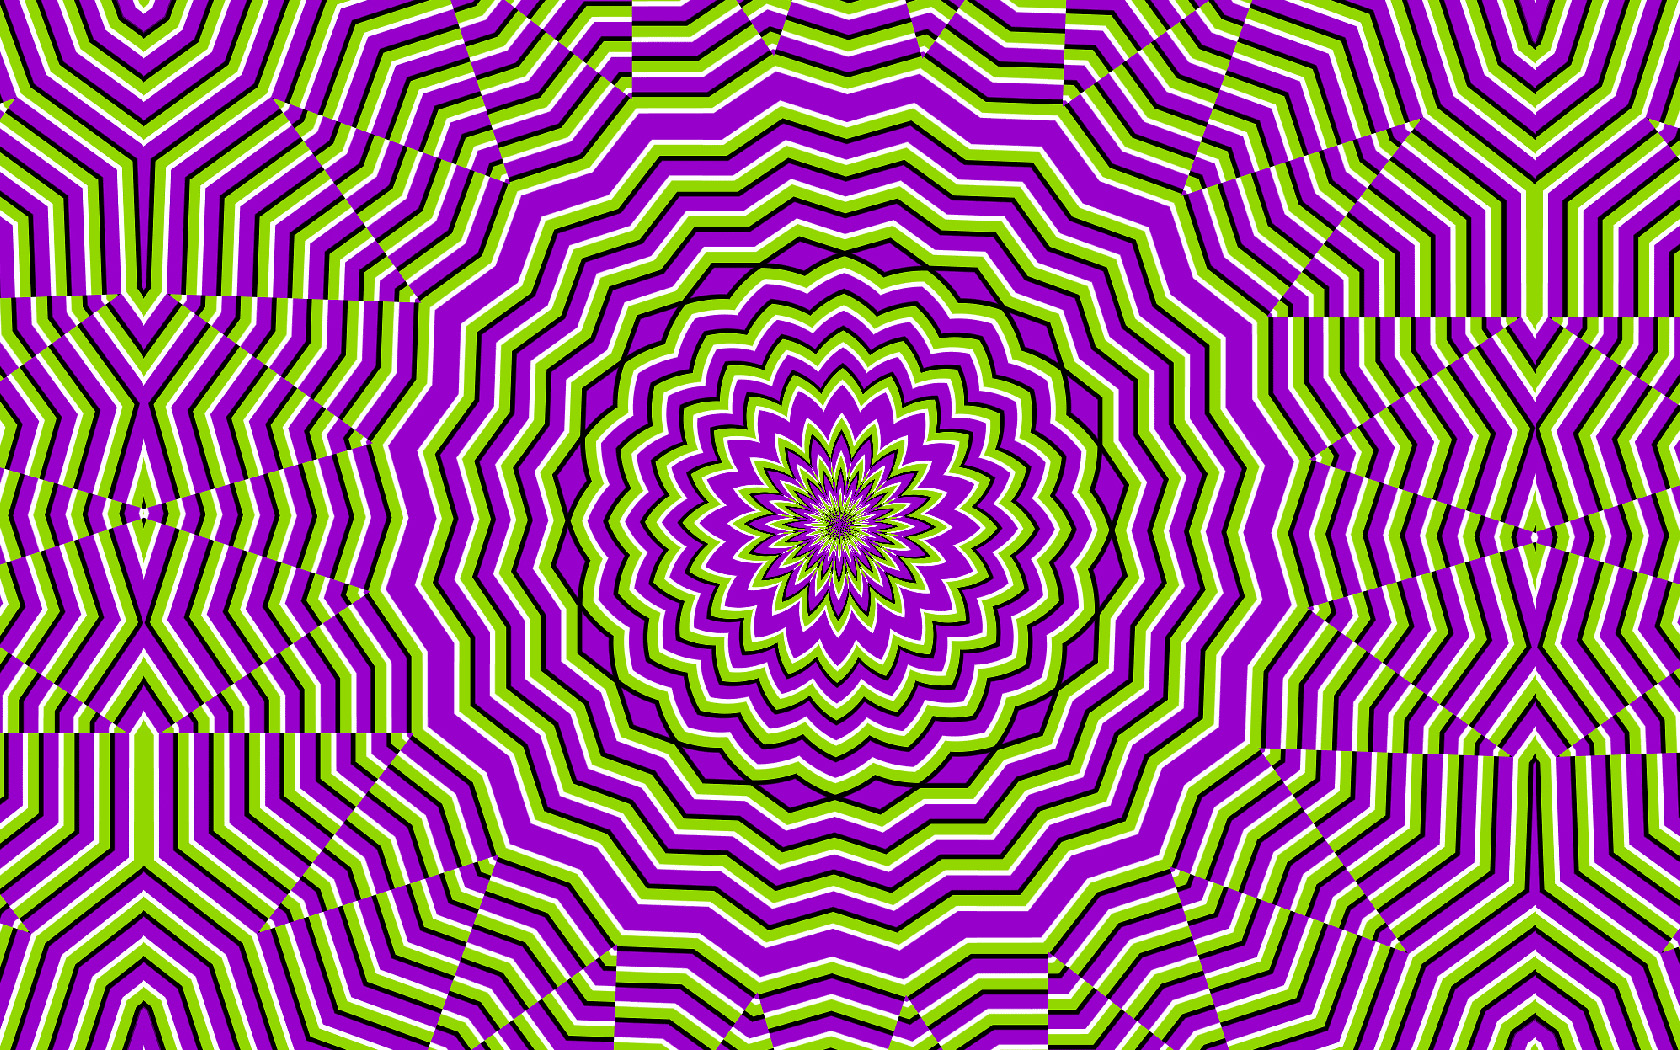 optical illusions wallpaper wallpapersafari